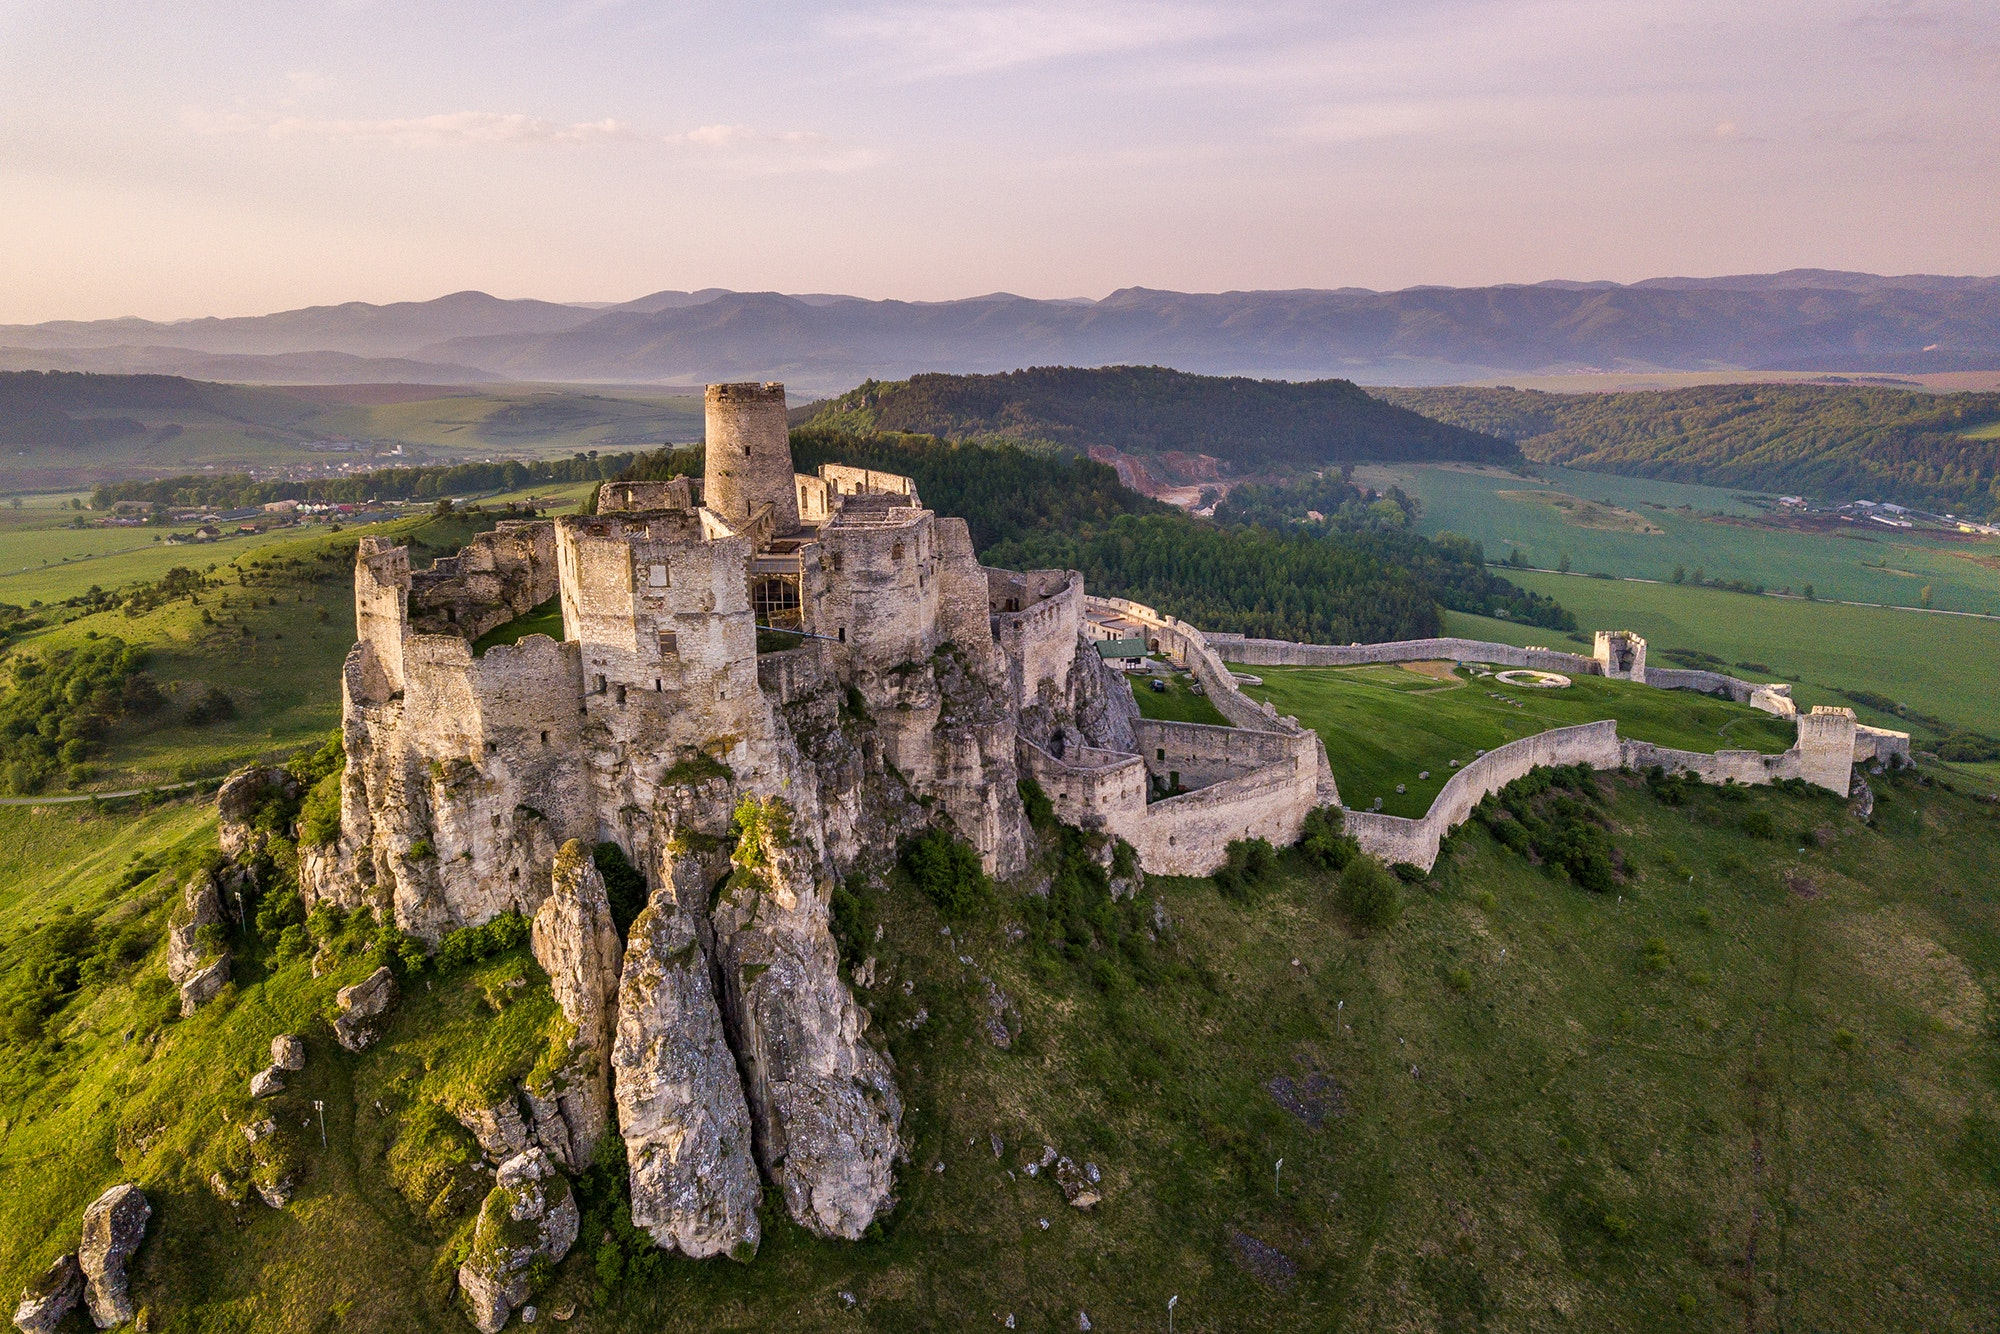 The abandoned Spiš Castle in Slovakia was inscribed to the UNESCO World Heritage list in 1993.